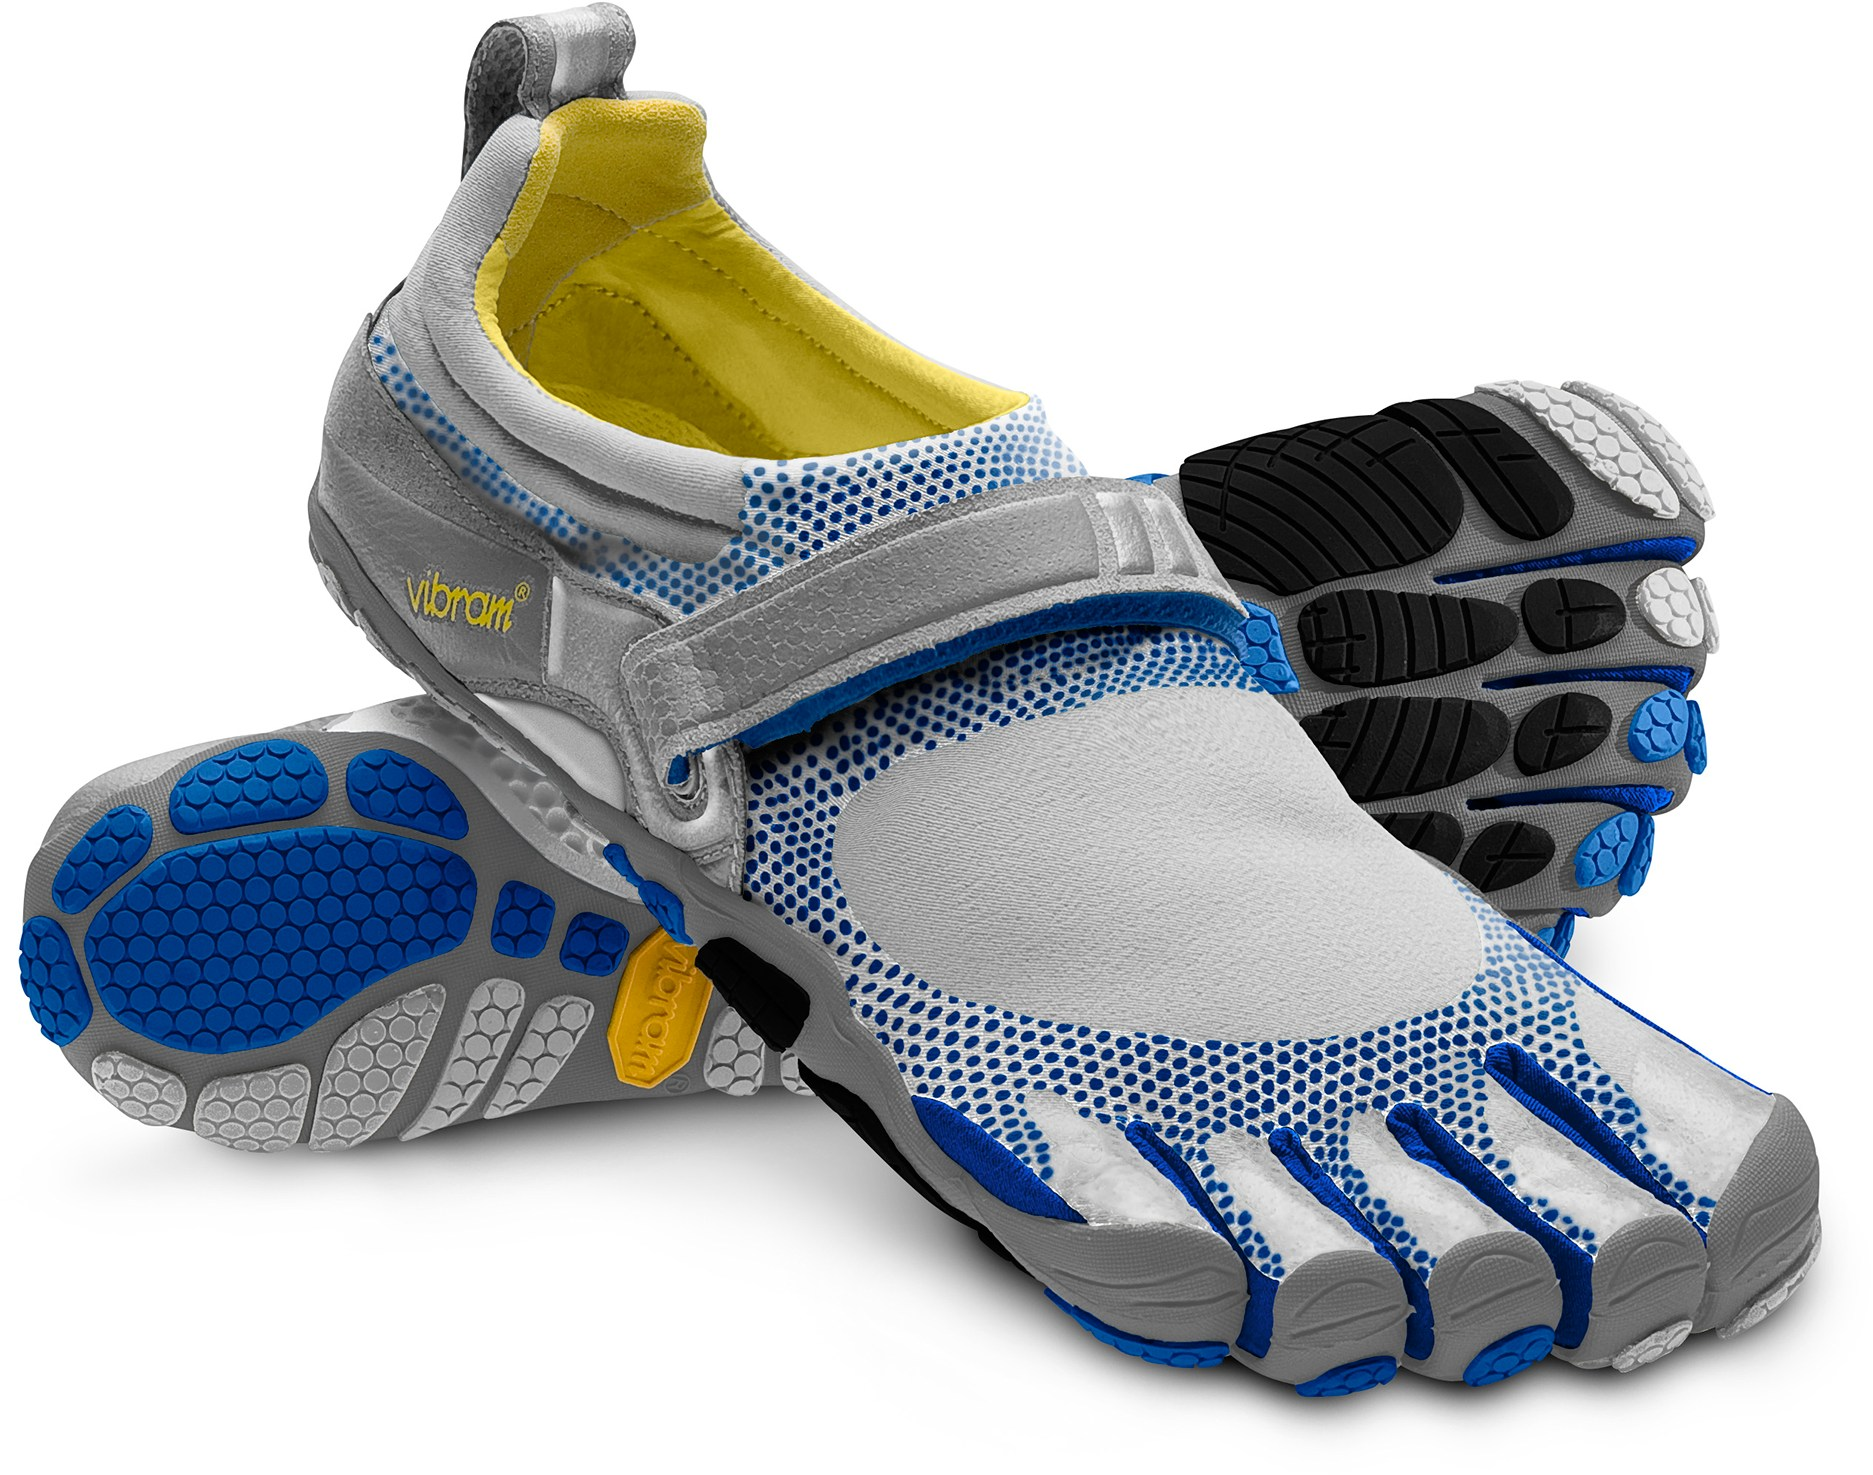 barefoot running shoes barefoot running shoe QXFYWRU